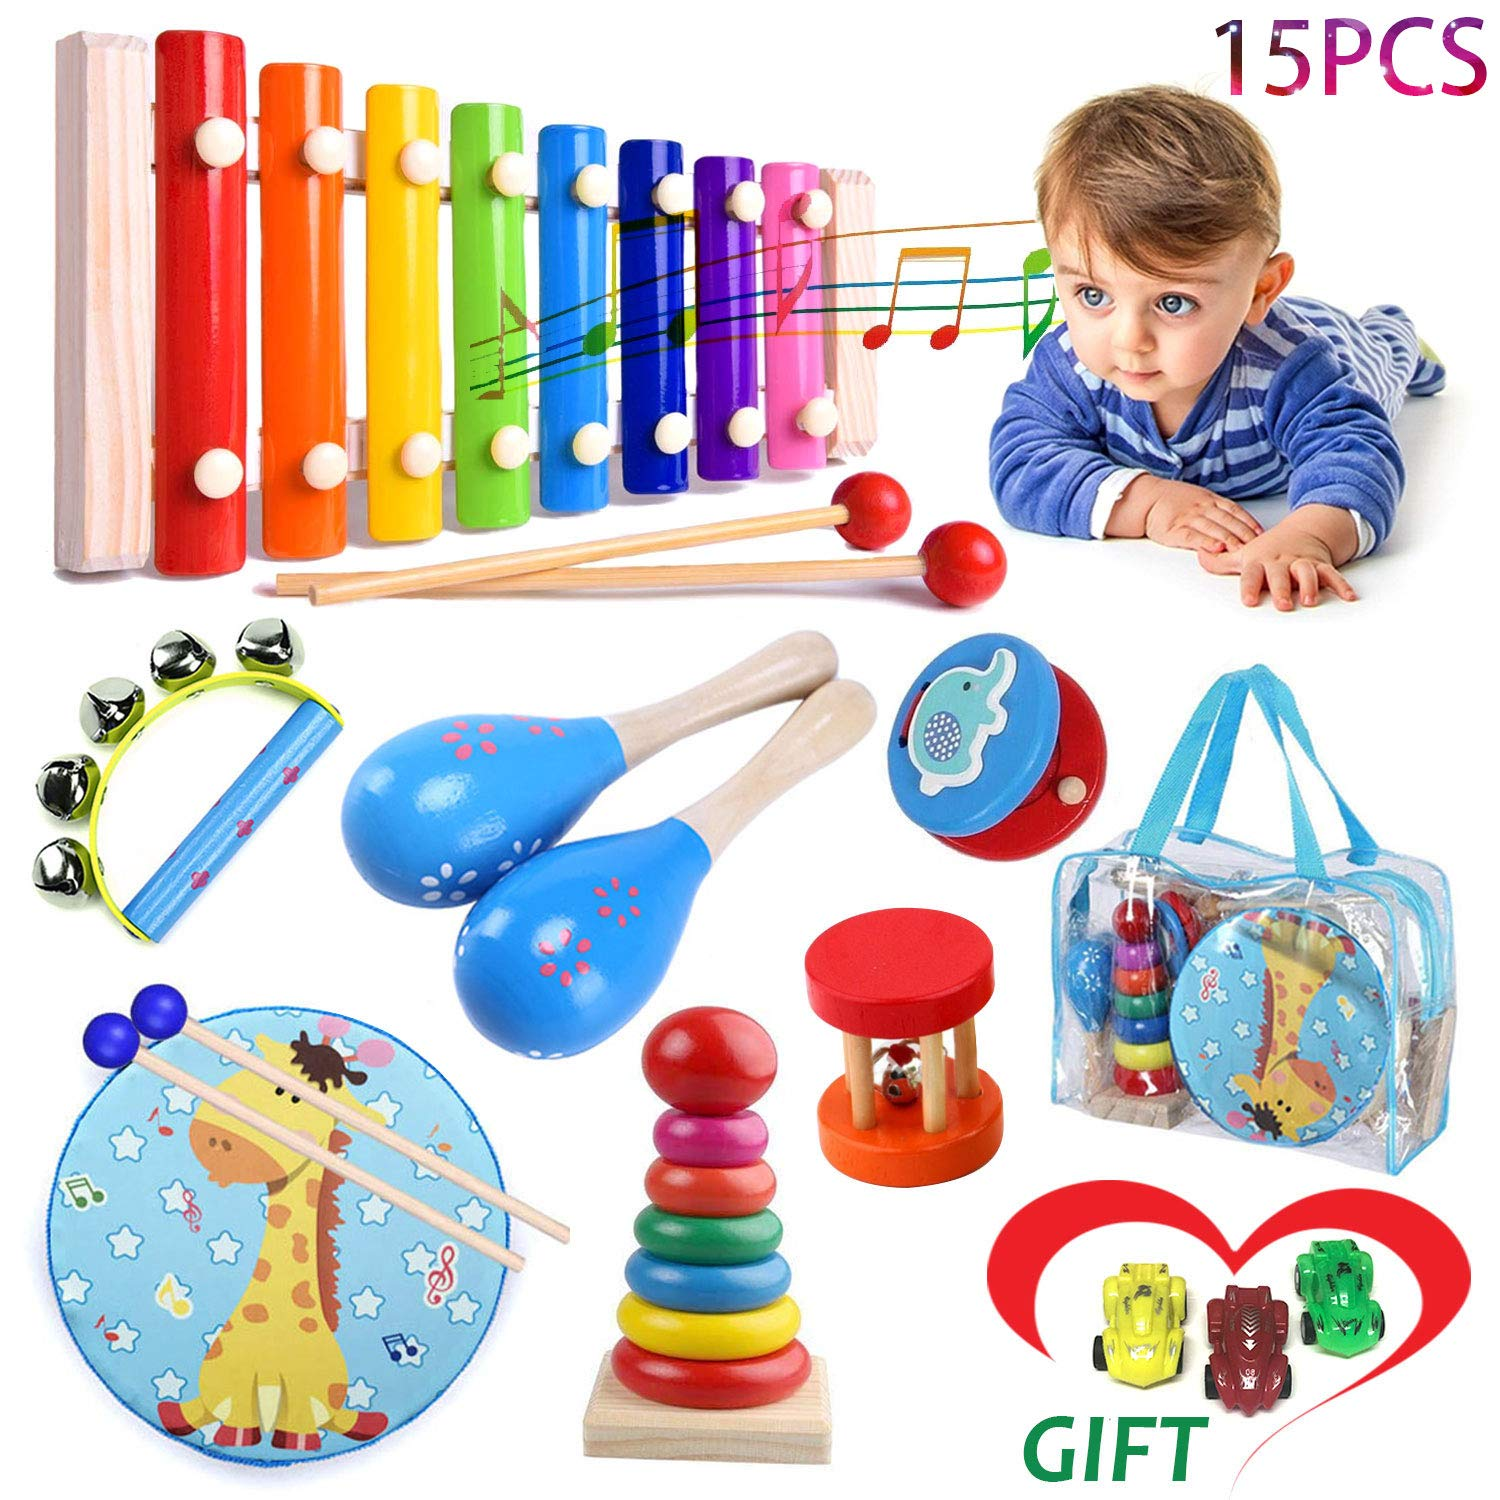 Kids Musical Percussion Instruments Set Wooden Musical Toys For Toddlers 6-12 months Babies Rhythm Instruments 1 2 3 4 5 6 Years Old Xylophone Children Educational Musical Gift With 3 Mini Sports Cars